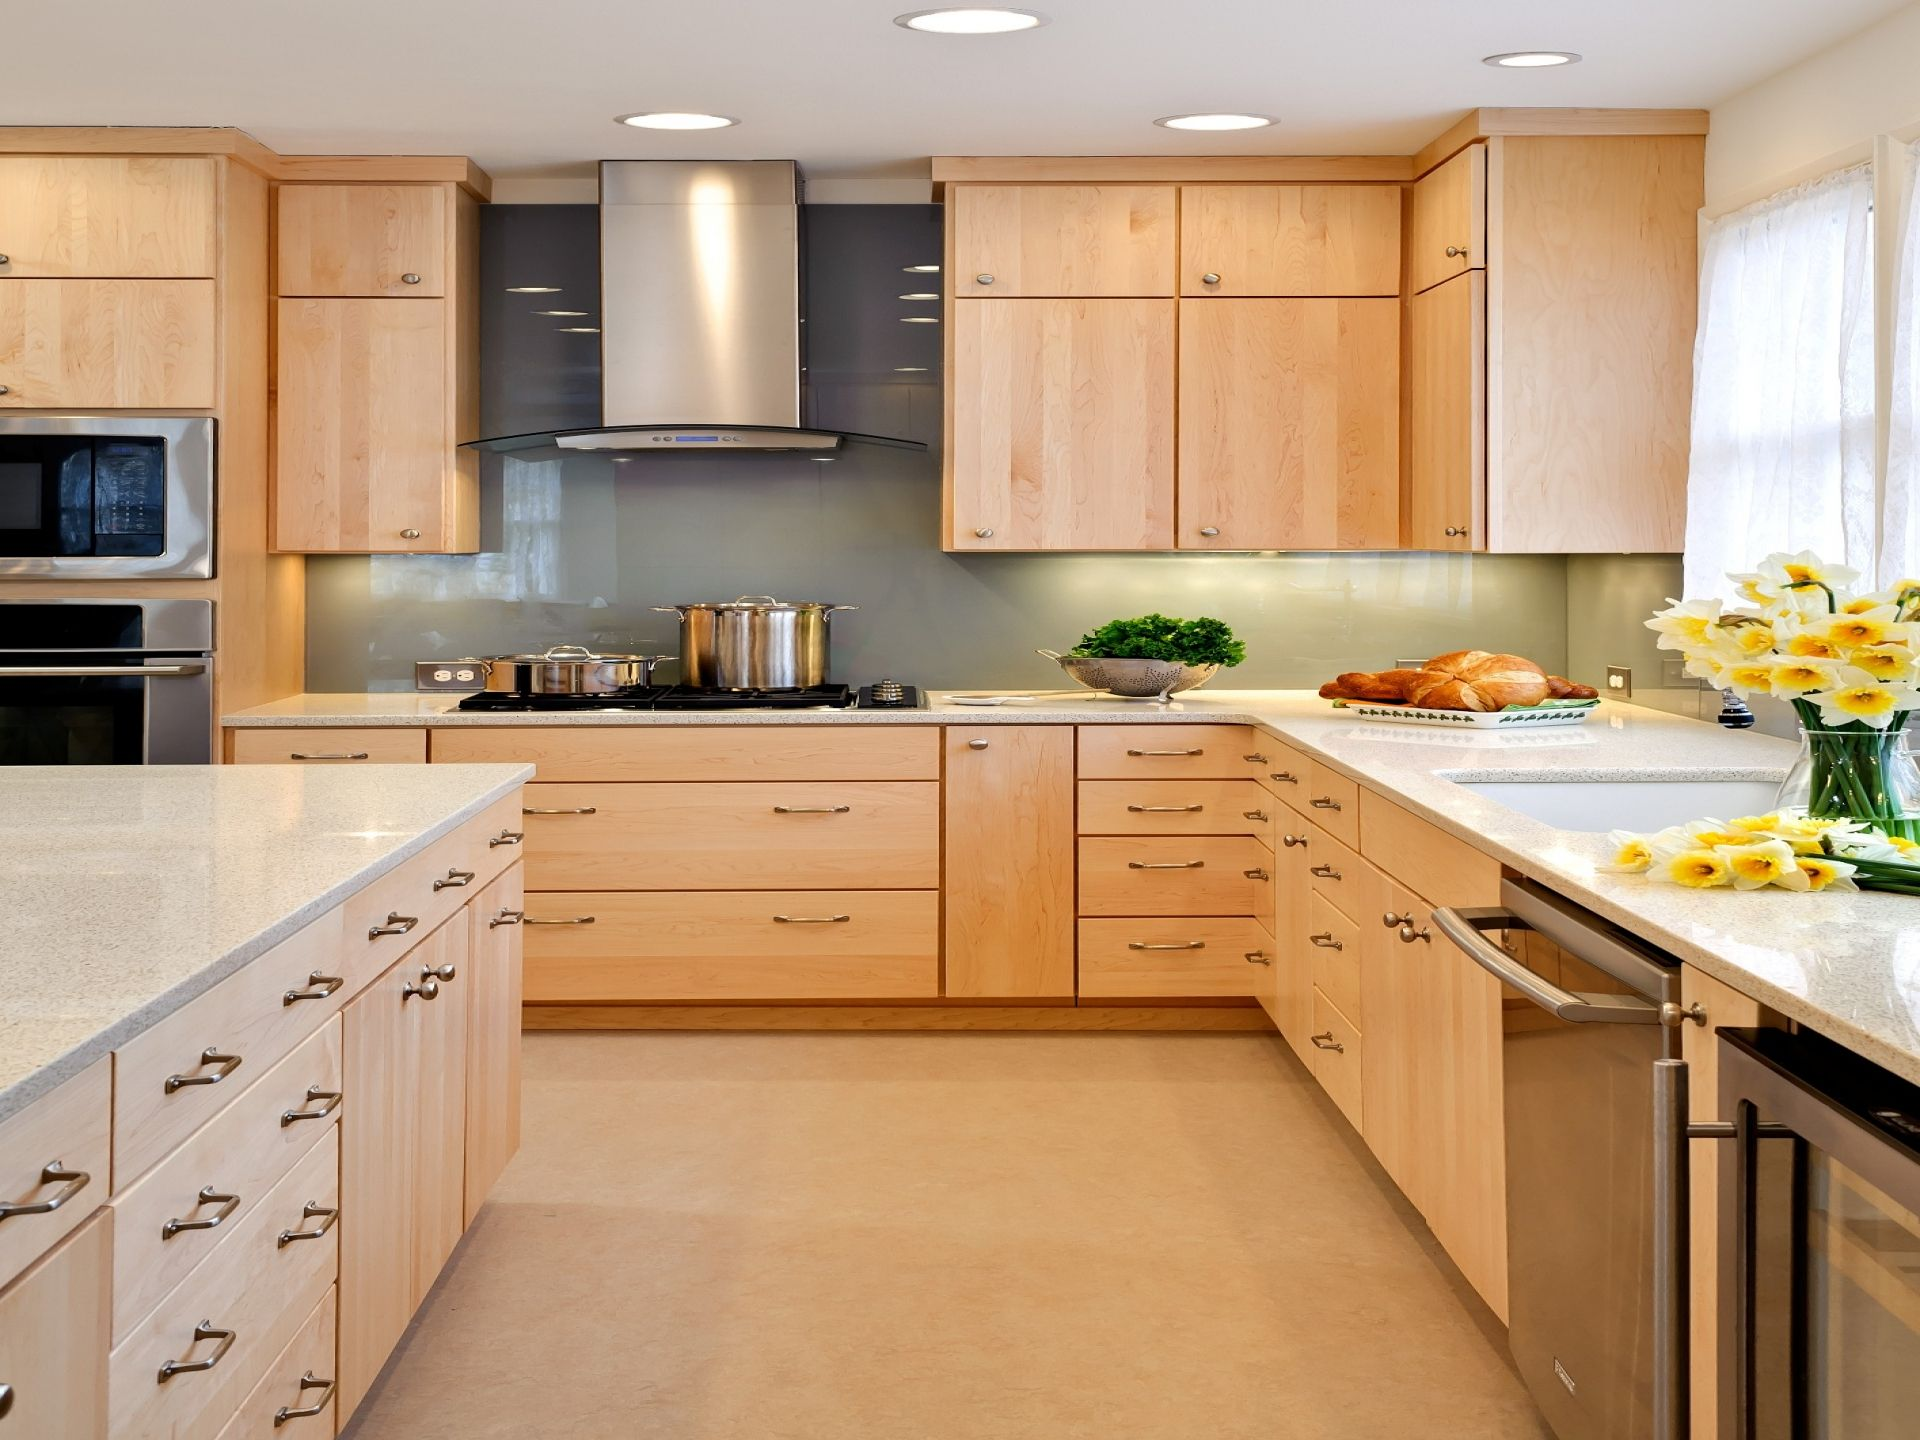 Maple Kitchen Cabinets to Have | Birch kitchen cabinets ... on Natural Maple Cabinets With Quartz Countertops  id=31581